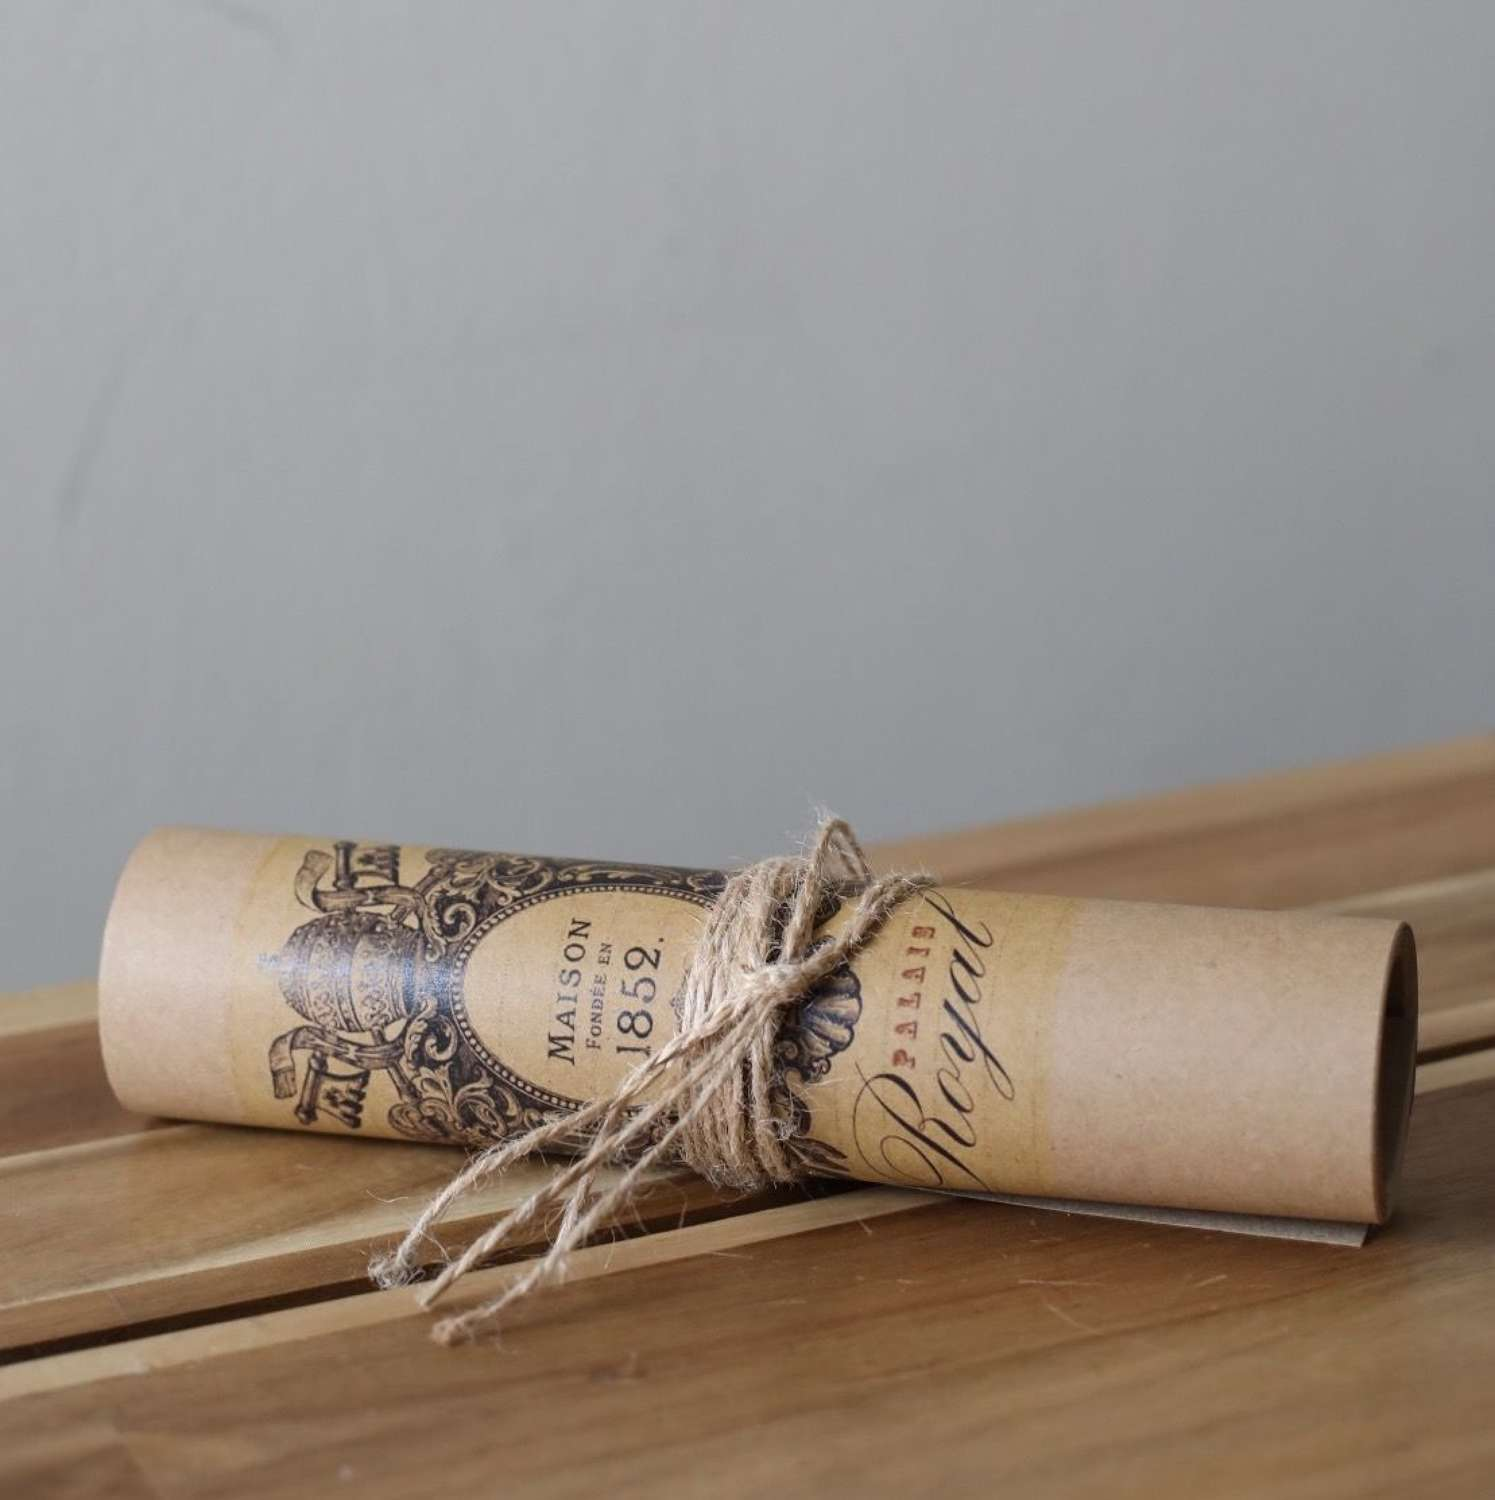 Decorative Paper Scroll.